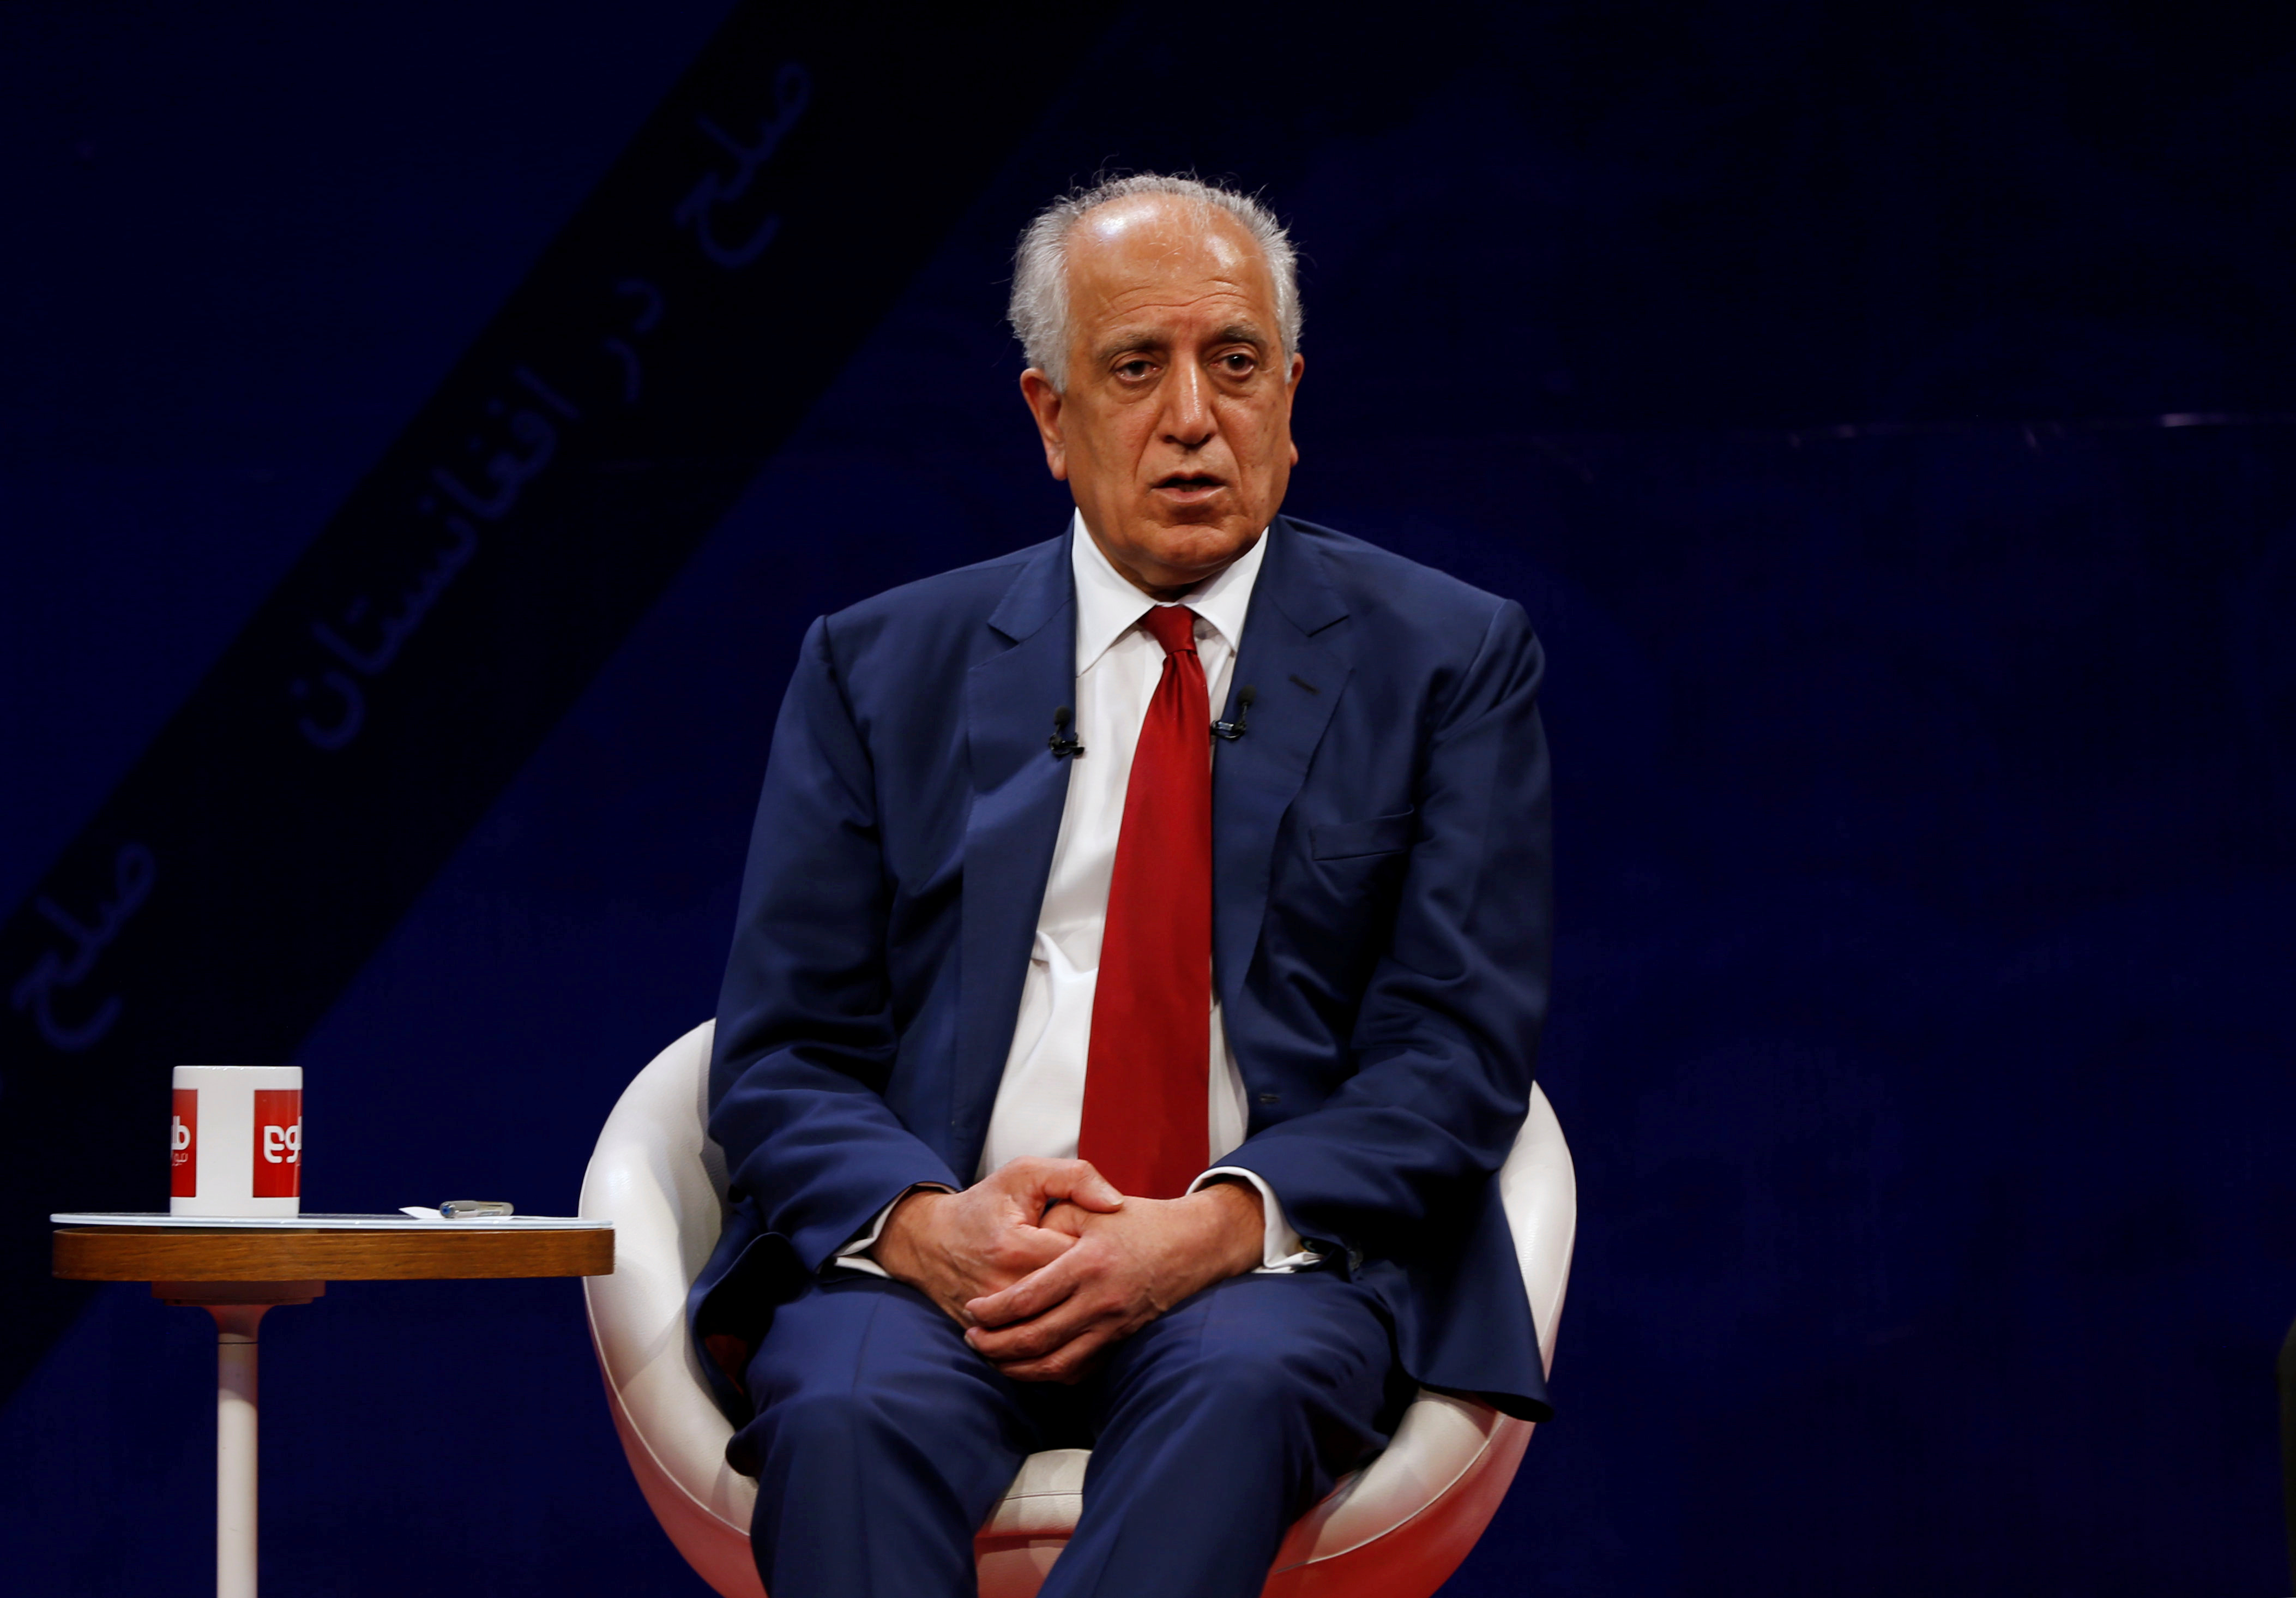 FILE PHOTO - U.S. envoy for peace in Afghanistan Zalmay Khalilzad, speaks during a debate at Tolo TV channel in Kabul, Afghanistan April 28, 2019. REUTERS/Omar Sobhani